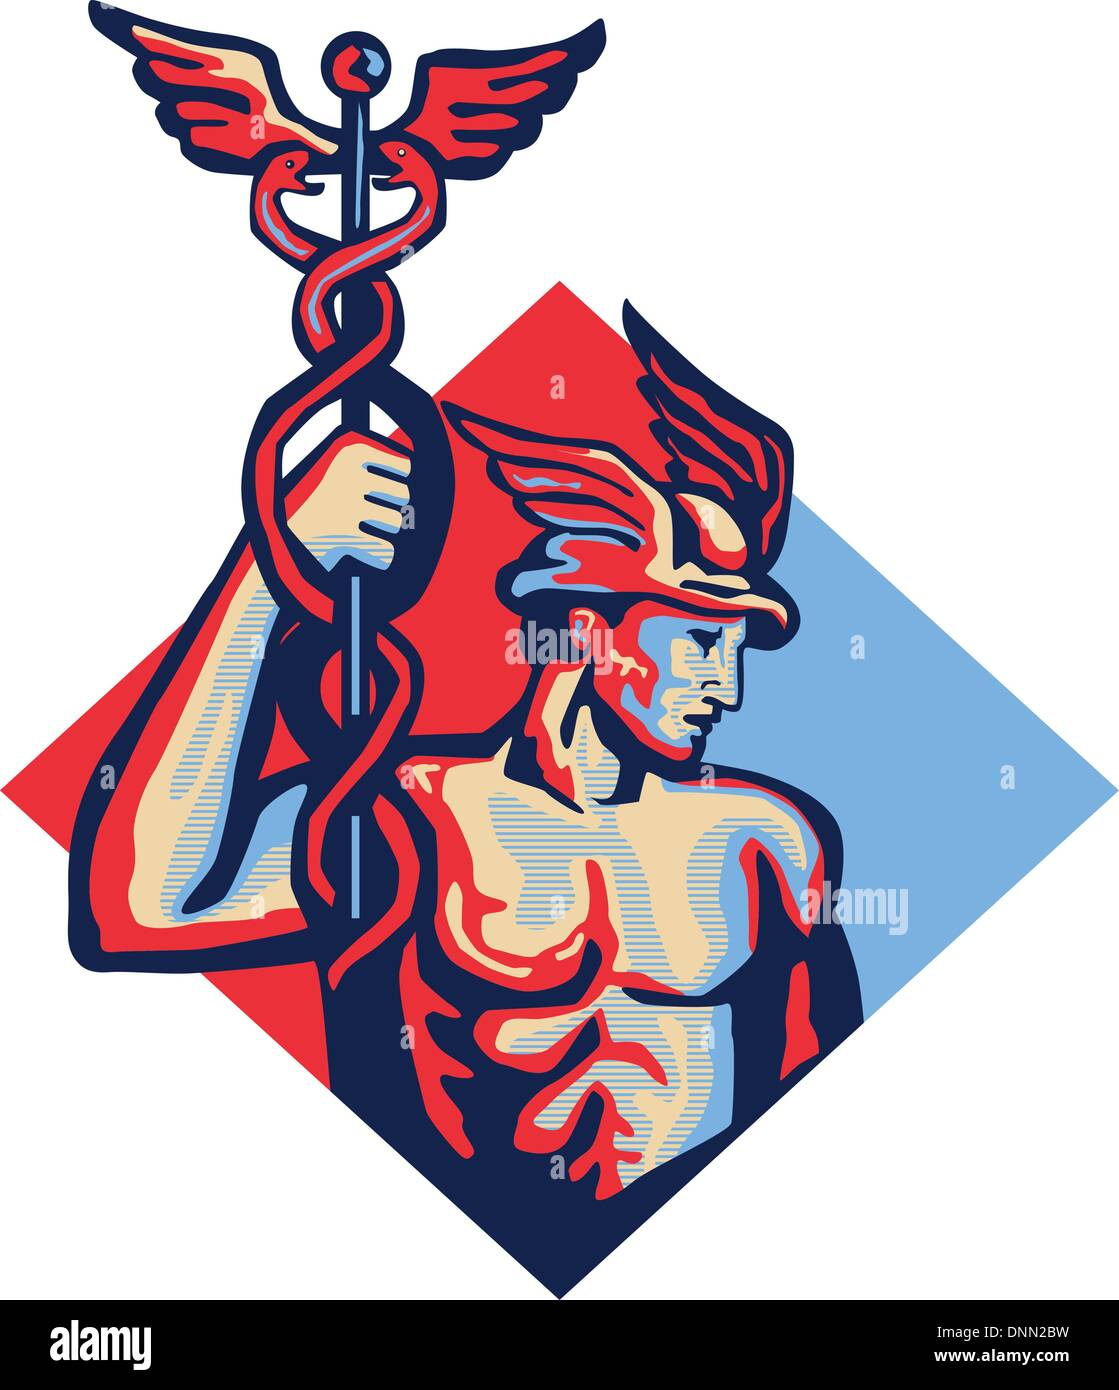 Illustration of Roman god Mercury patron god of financial gain,commerce, communication and travelers wearing winged hat and holding caduceus a herald's staff with two entwined snakes set inside diamond shape retro style. - Stock Image